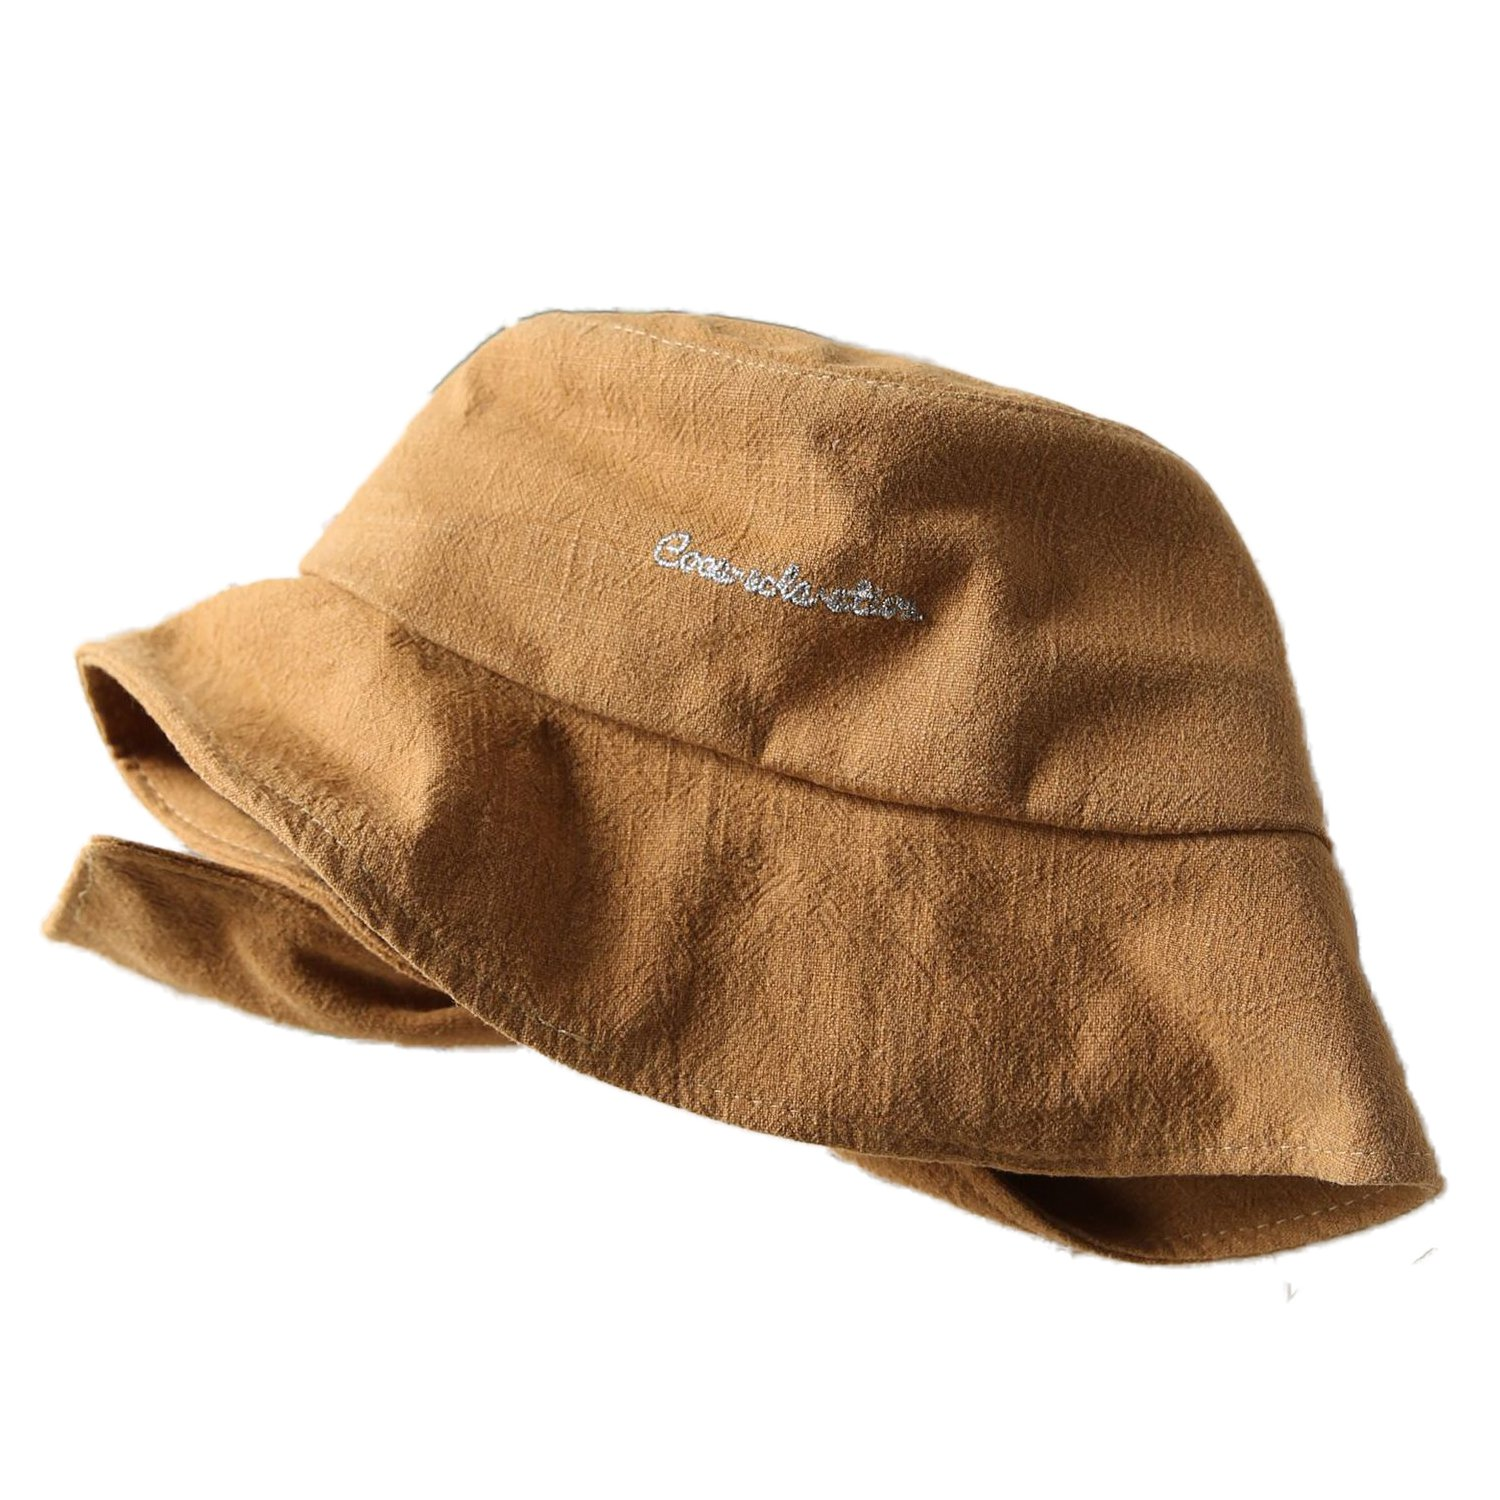 ChezAbbey Flat Top Bucket Hats Solid Color Sun Protection Fisherman Caps with Embroidery Letters